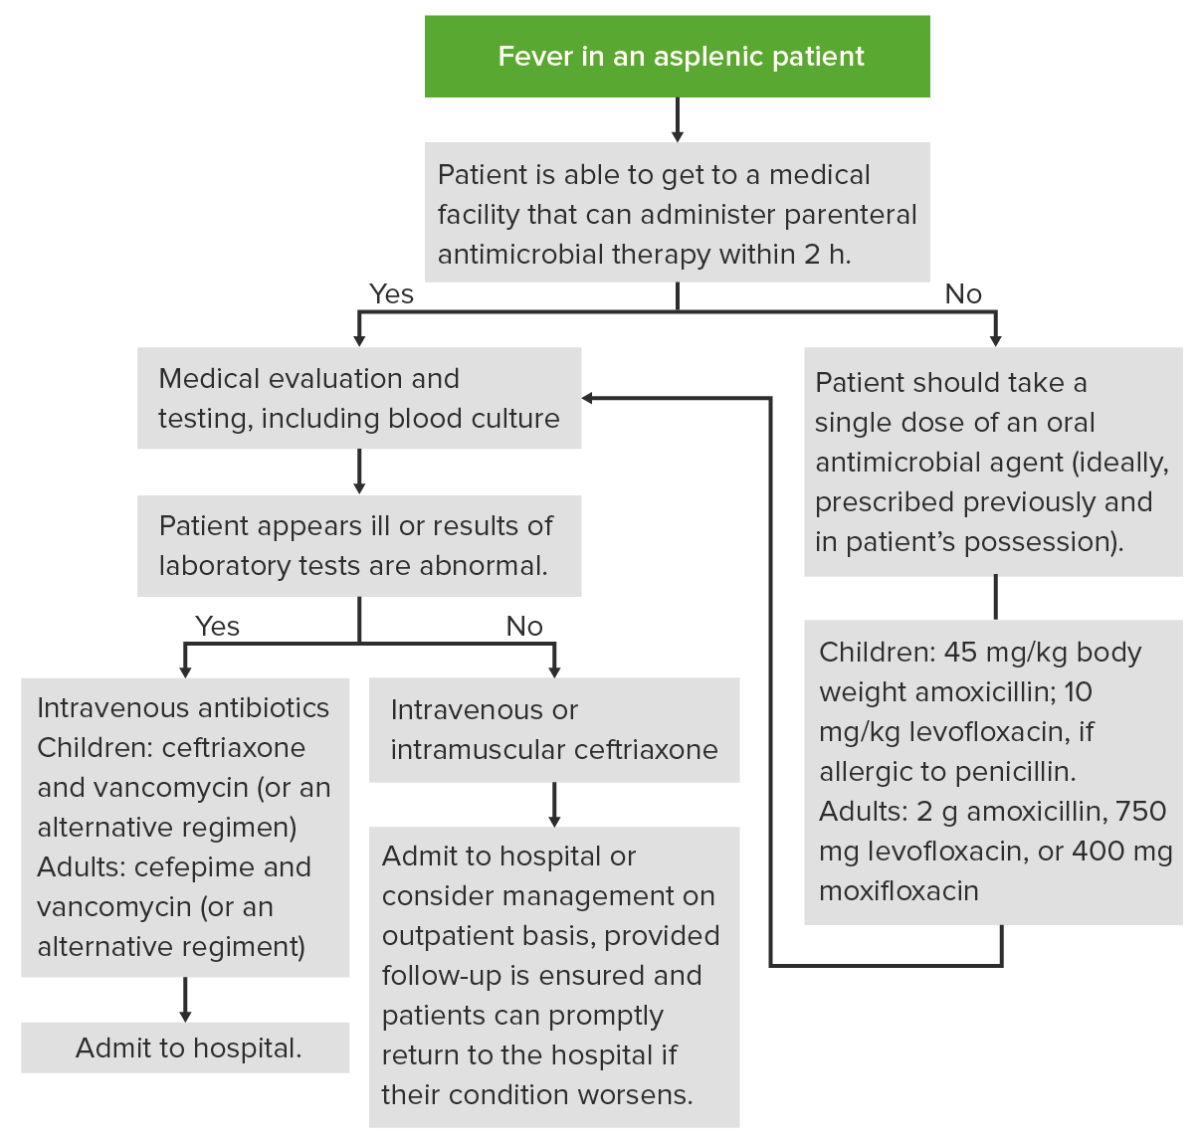 Management of Fever in an Asplenic Patient